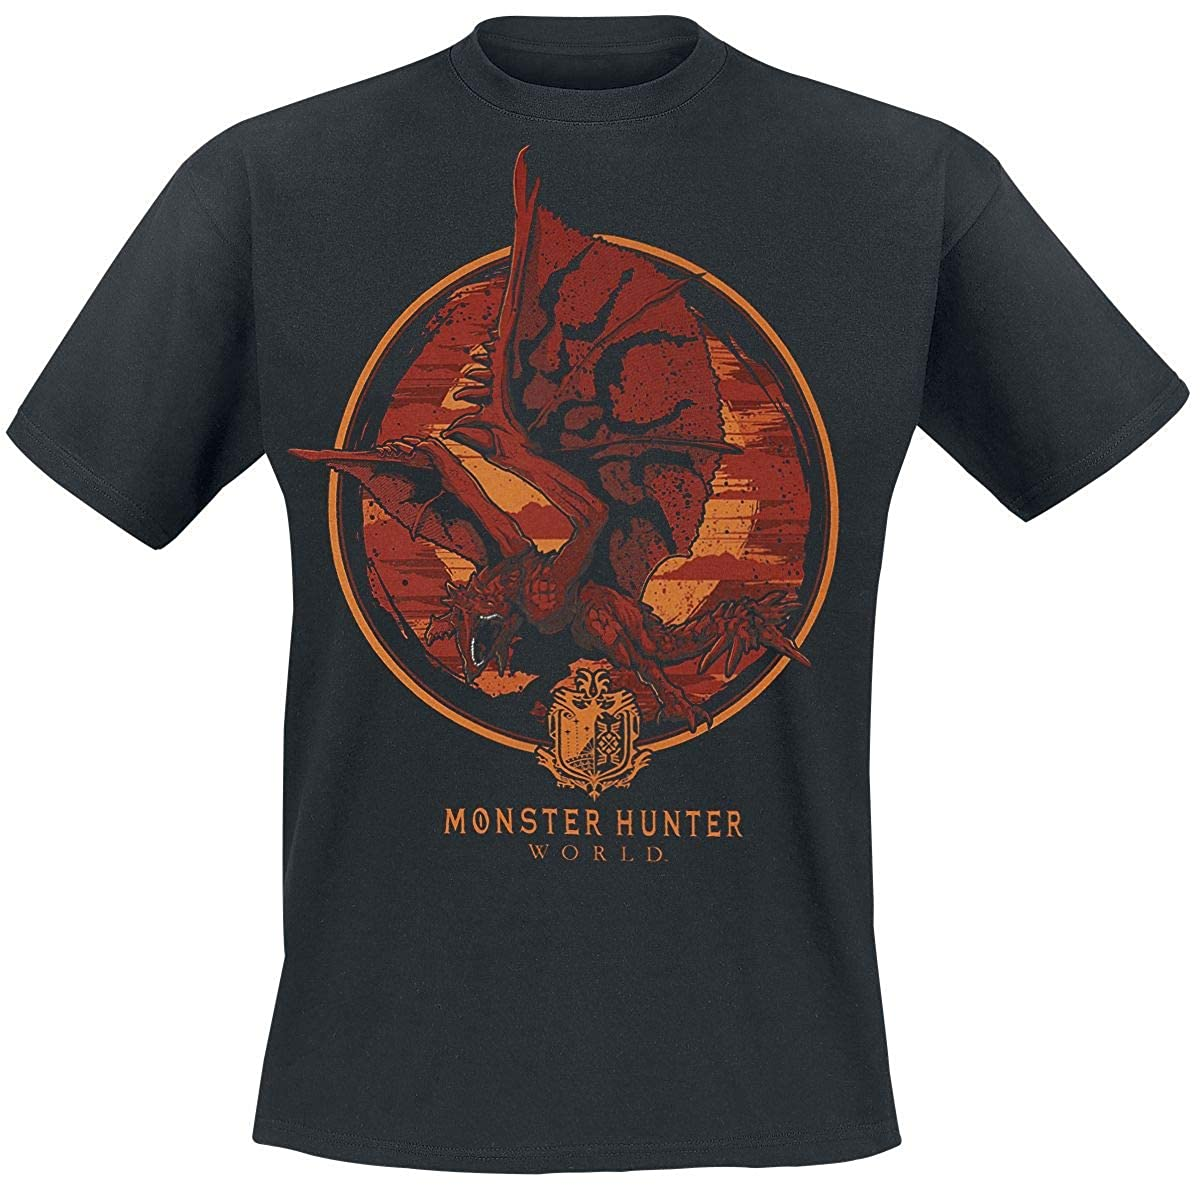 TALLA M. Monster Hunter World - Screaming Rathalos Camiseta Negro